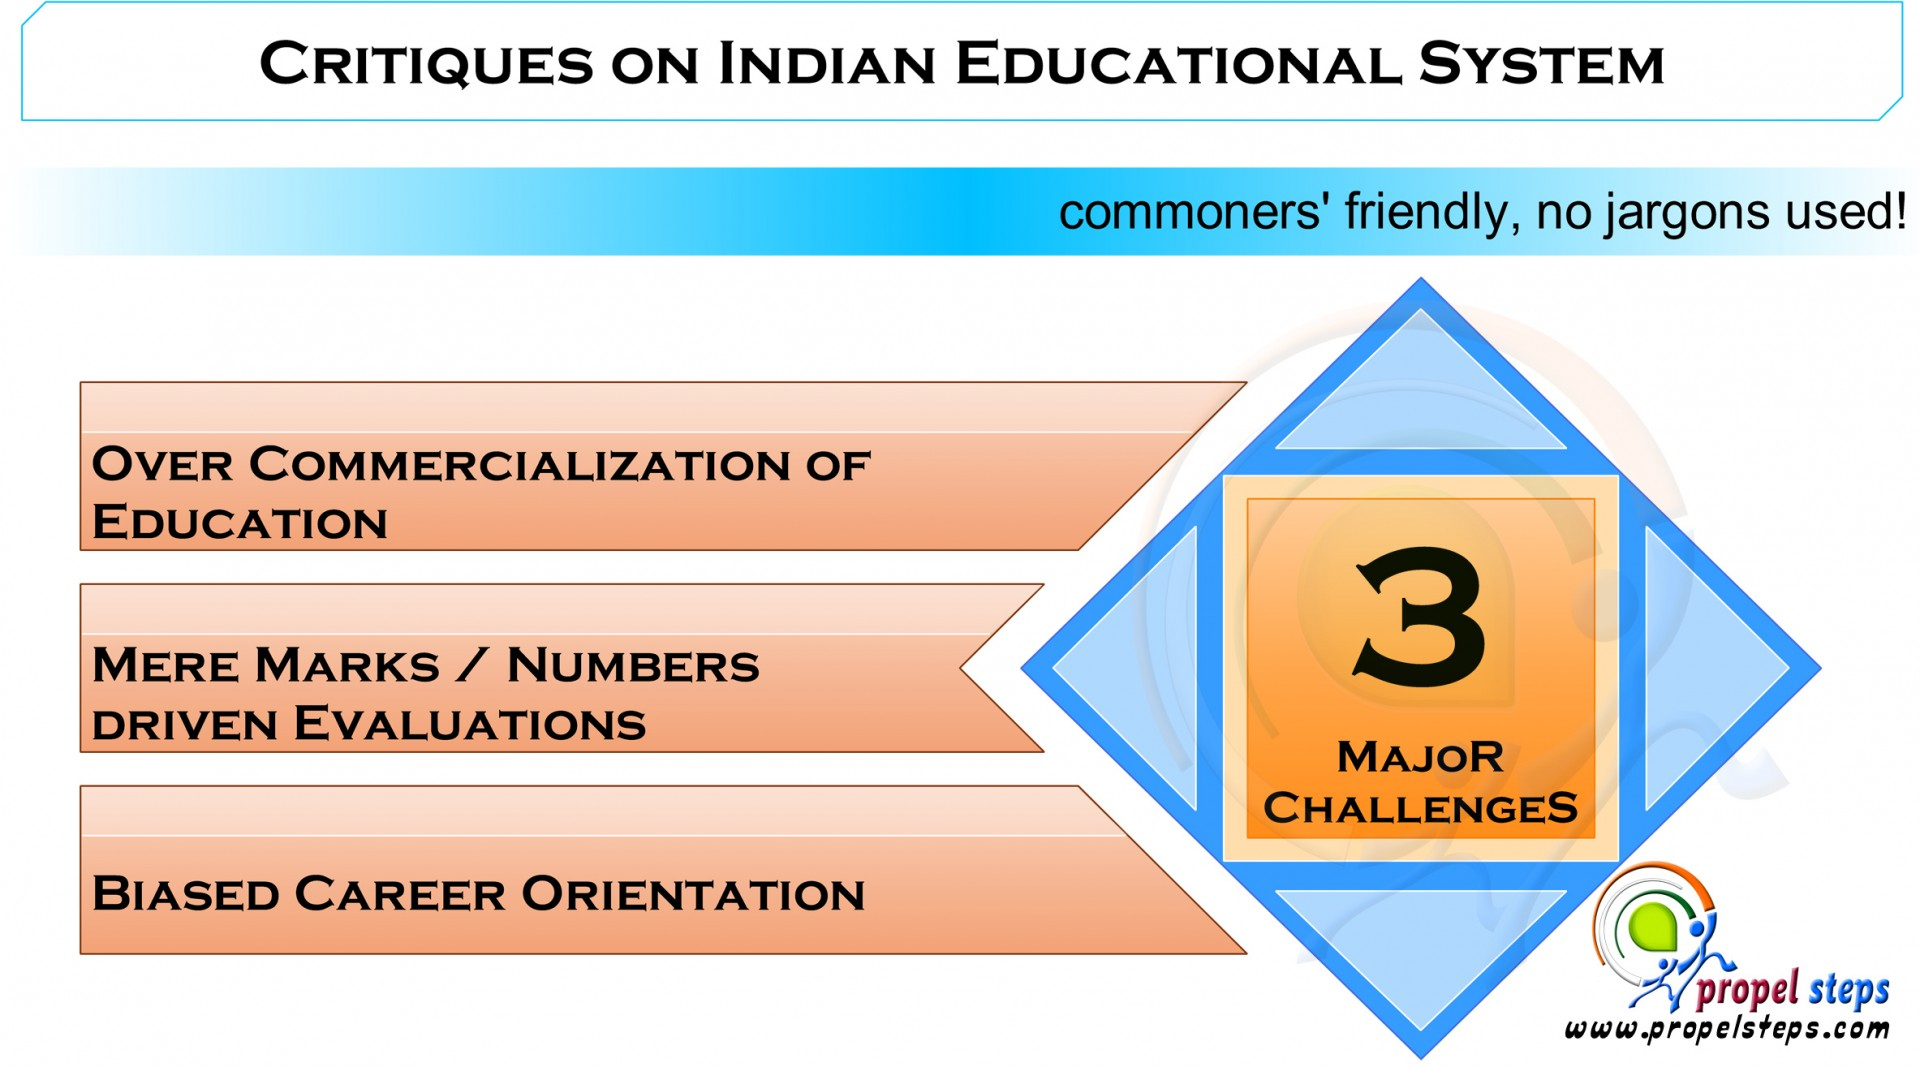 016 Essay On Quality Education In India Example Critiques Breathtaking Of Higher 1920